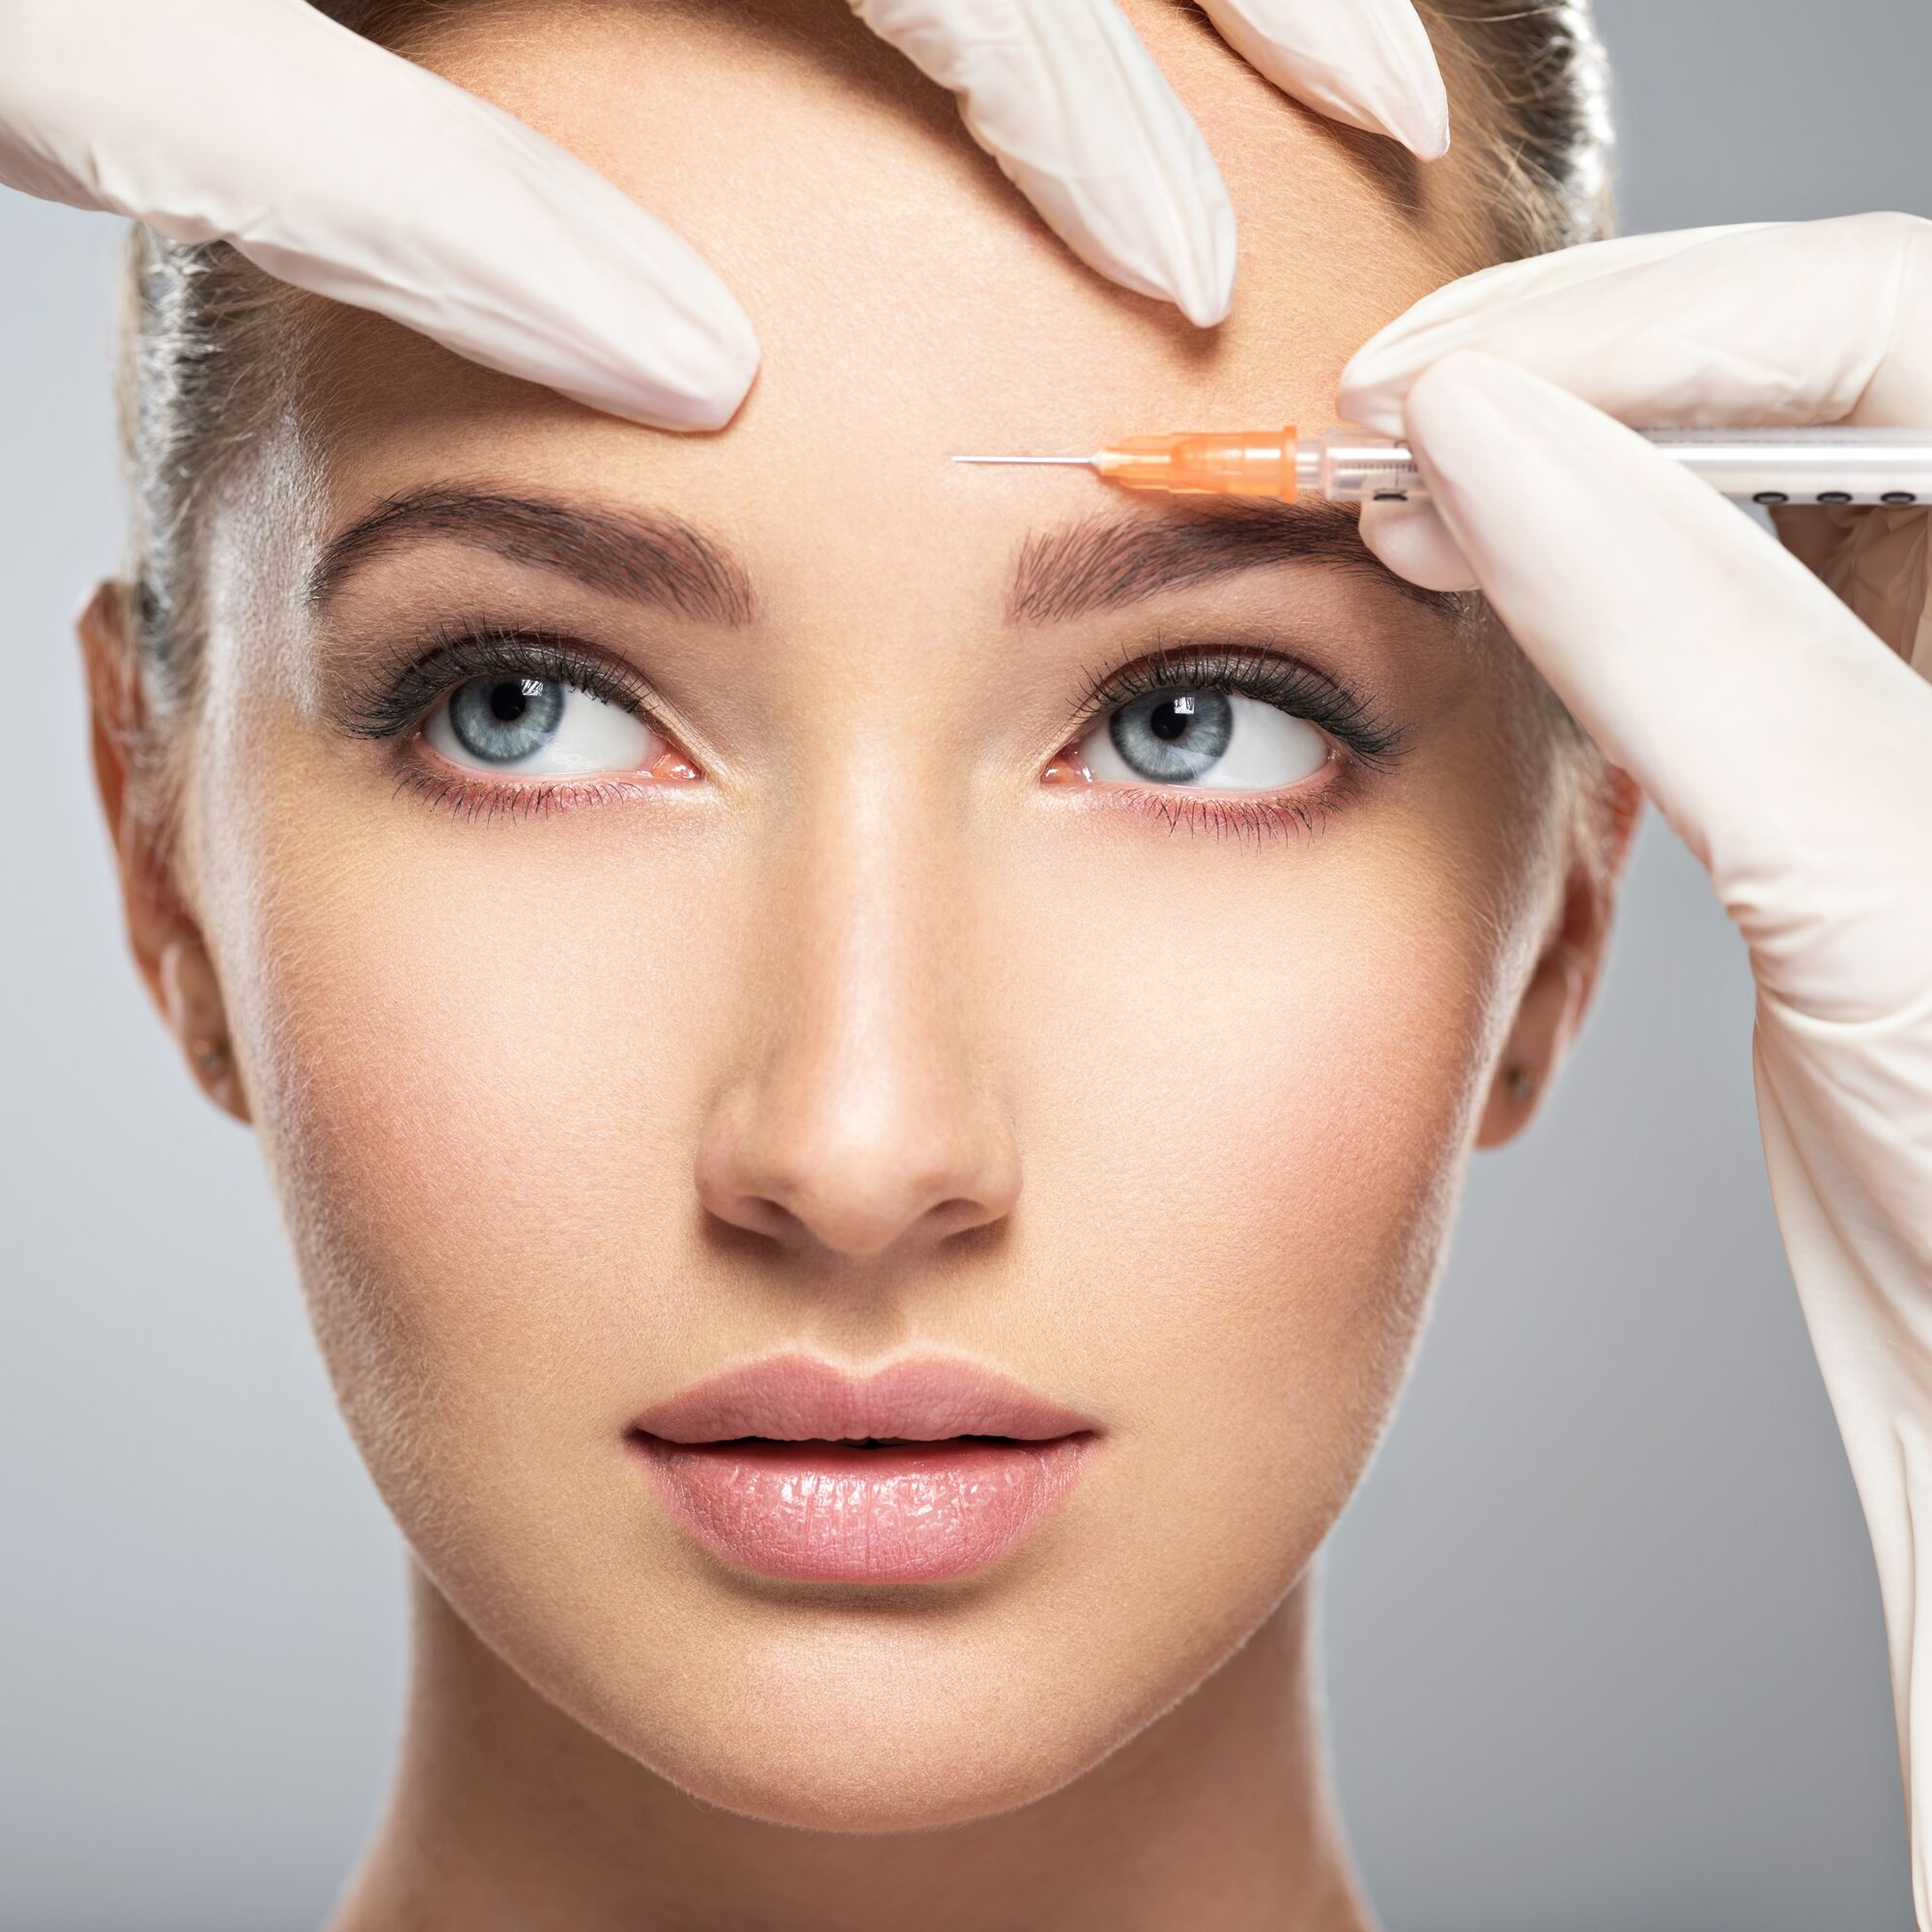 Woman getting botox injected into her forehead